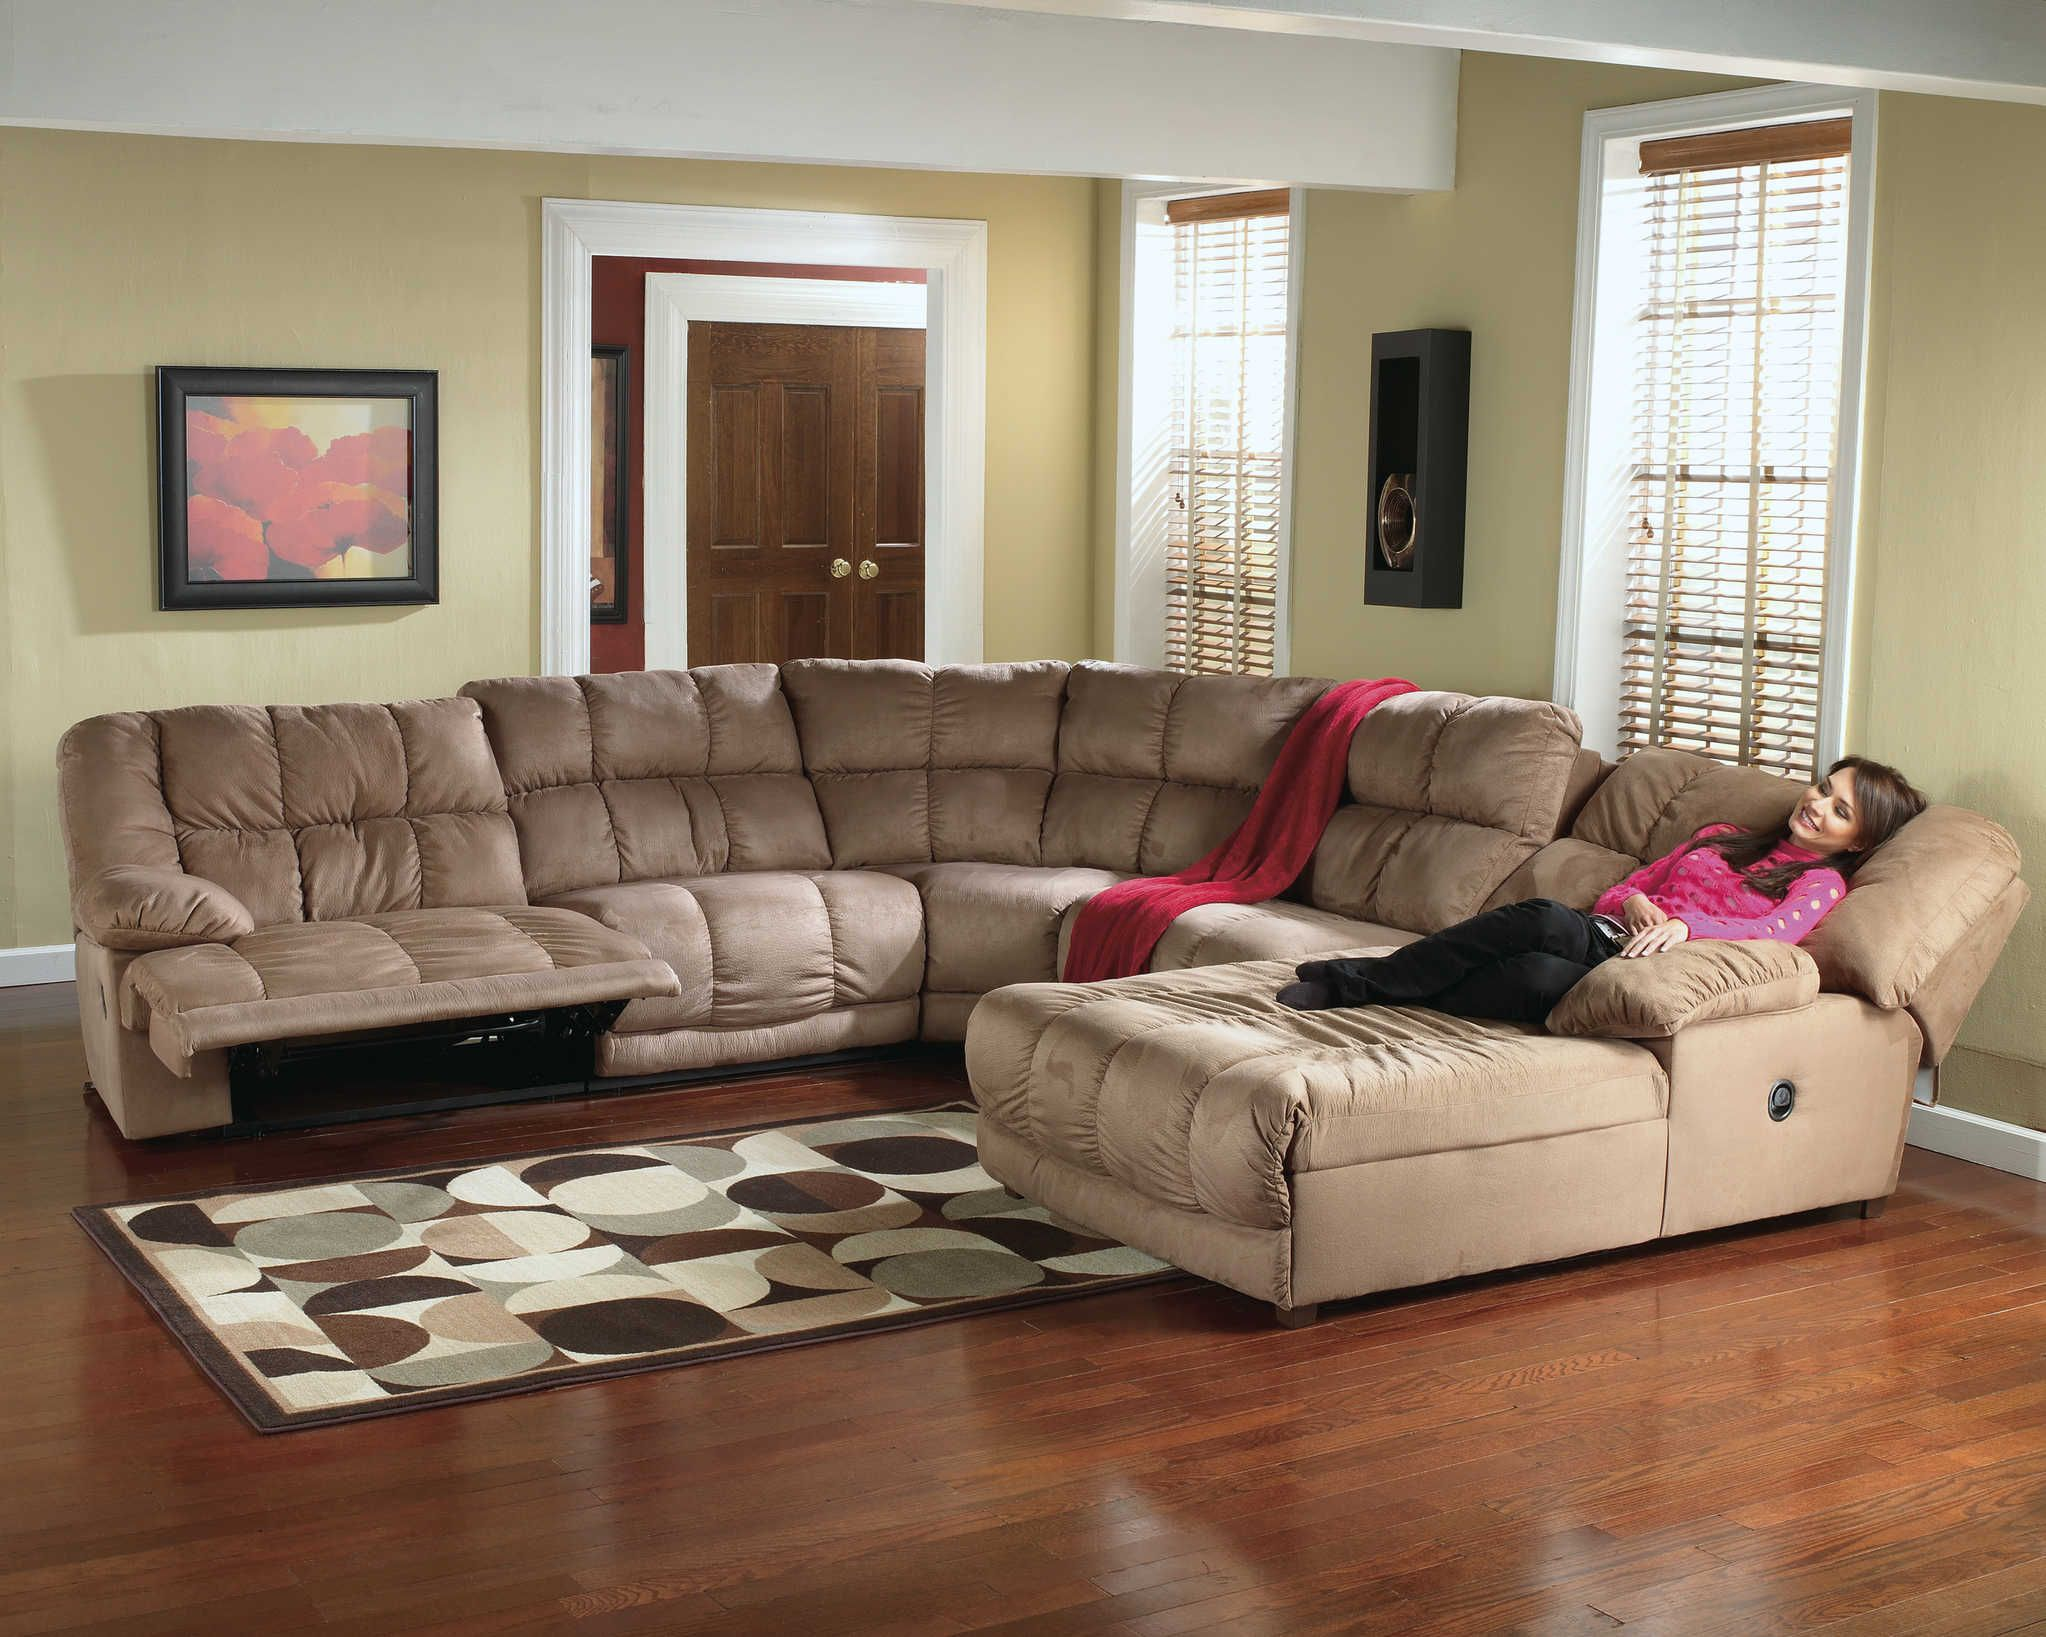 Best Microfiber Recliner Sectional Sectional Sofa Recliner Chaise 260 Sectional Sofa With 400 x 300